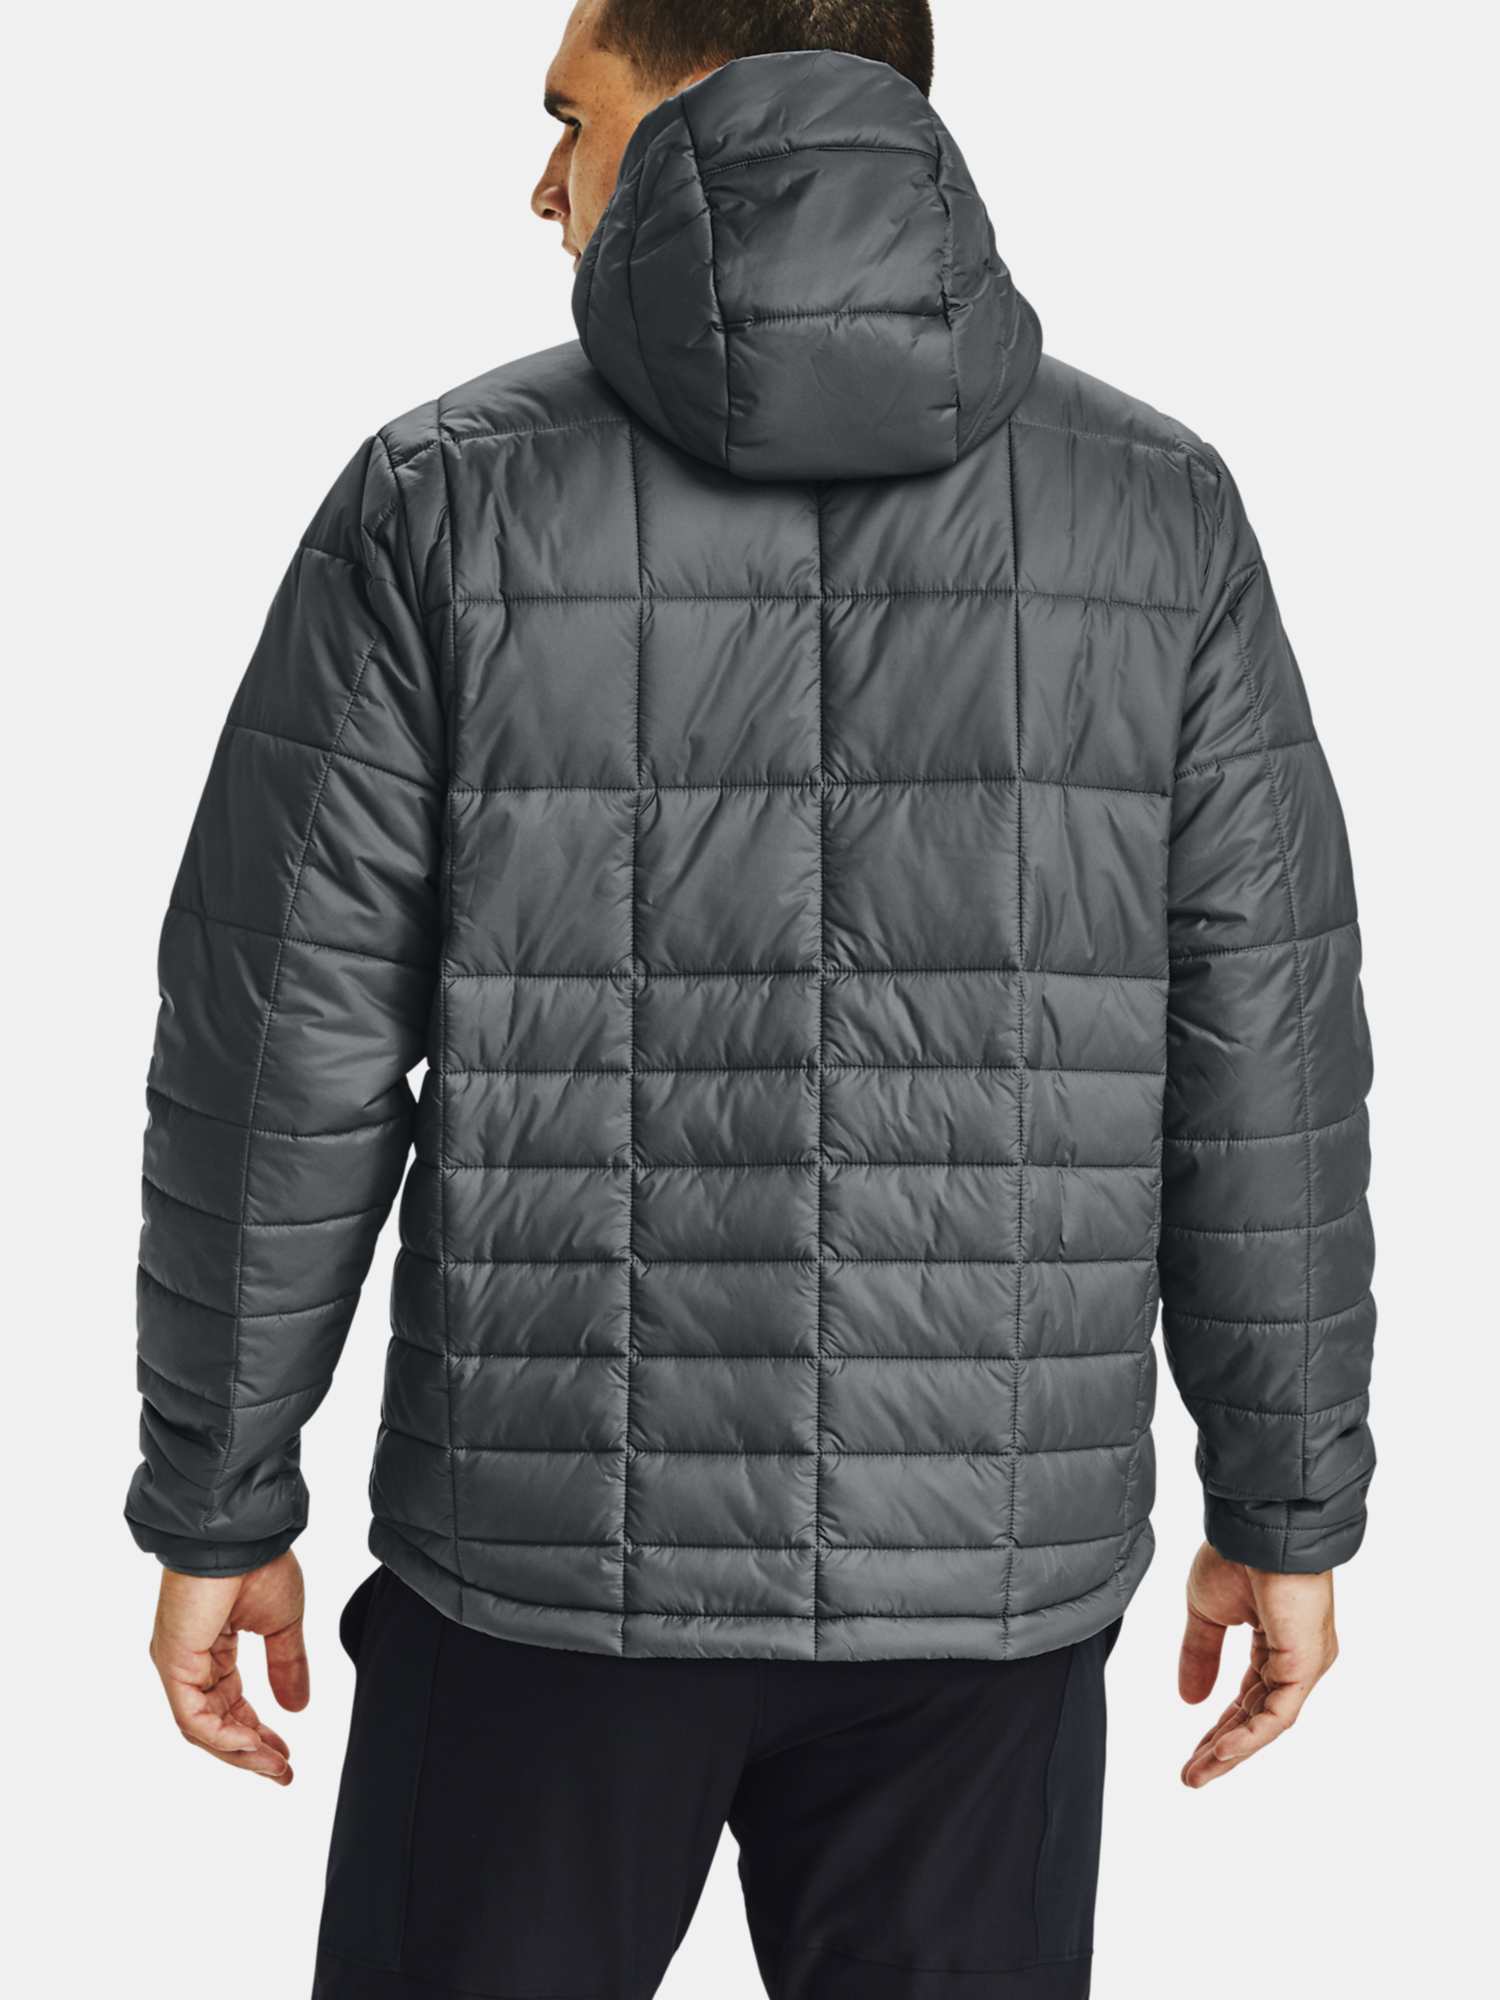 Bunda Under Armour UA Armour Insulated Hooded Jkt-GRY (2)